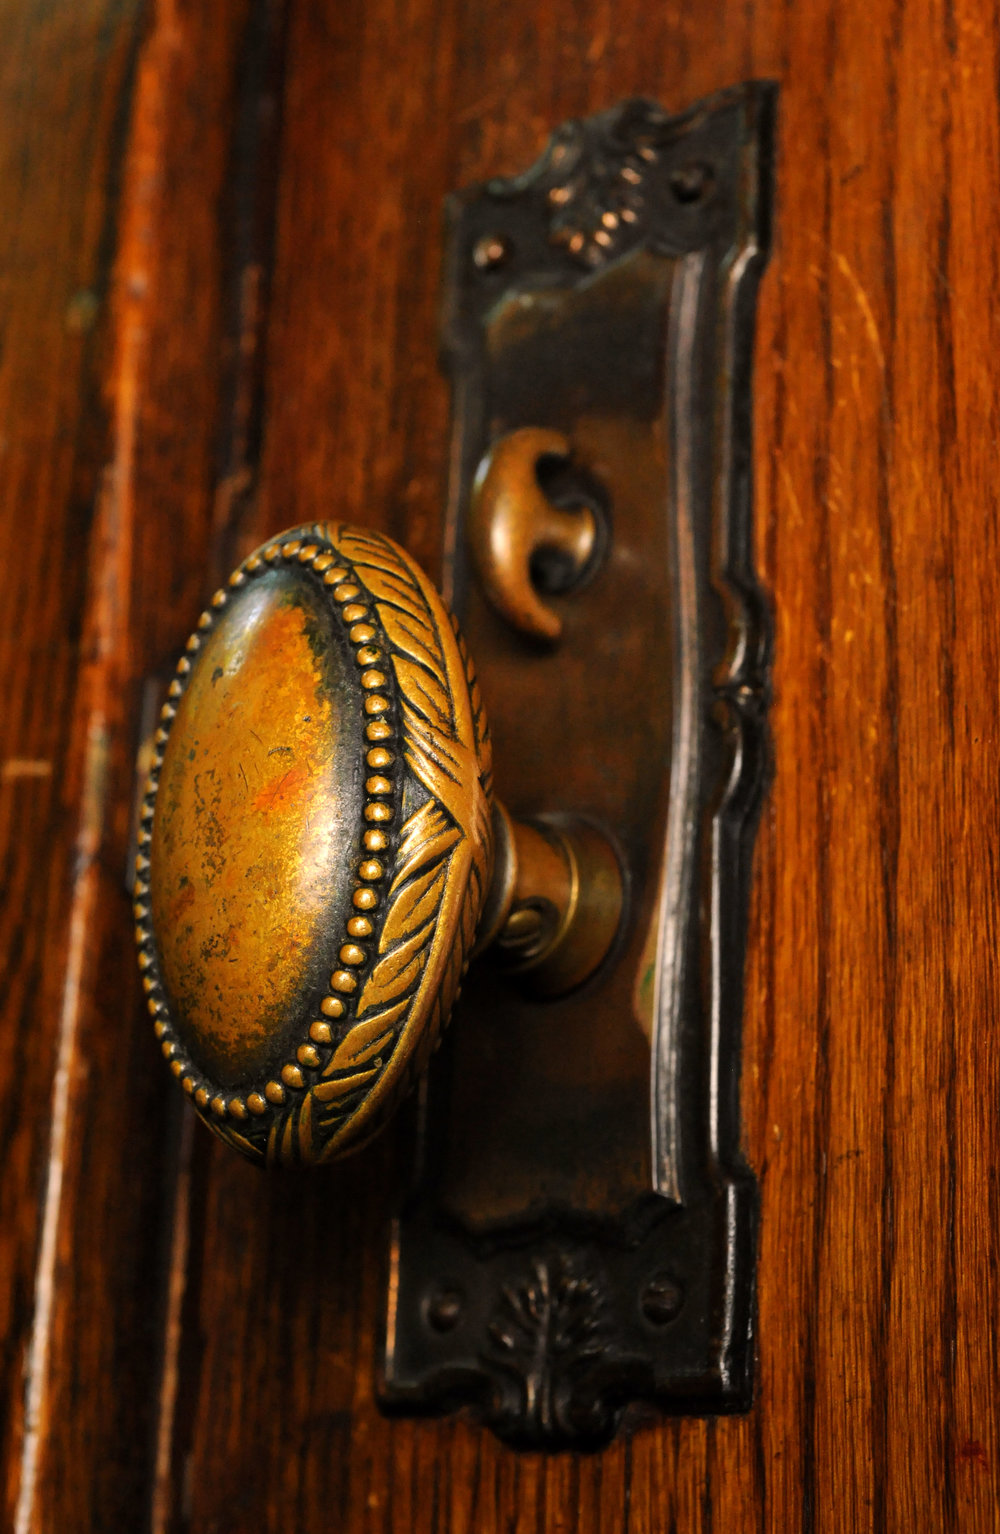 H20125-cast-bronze-knob-set-on-door.jpg